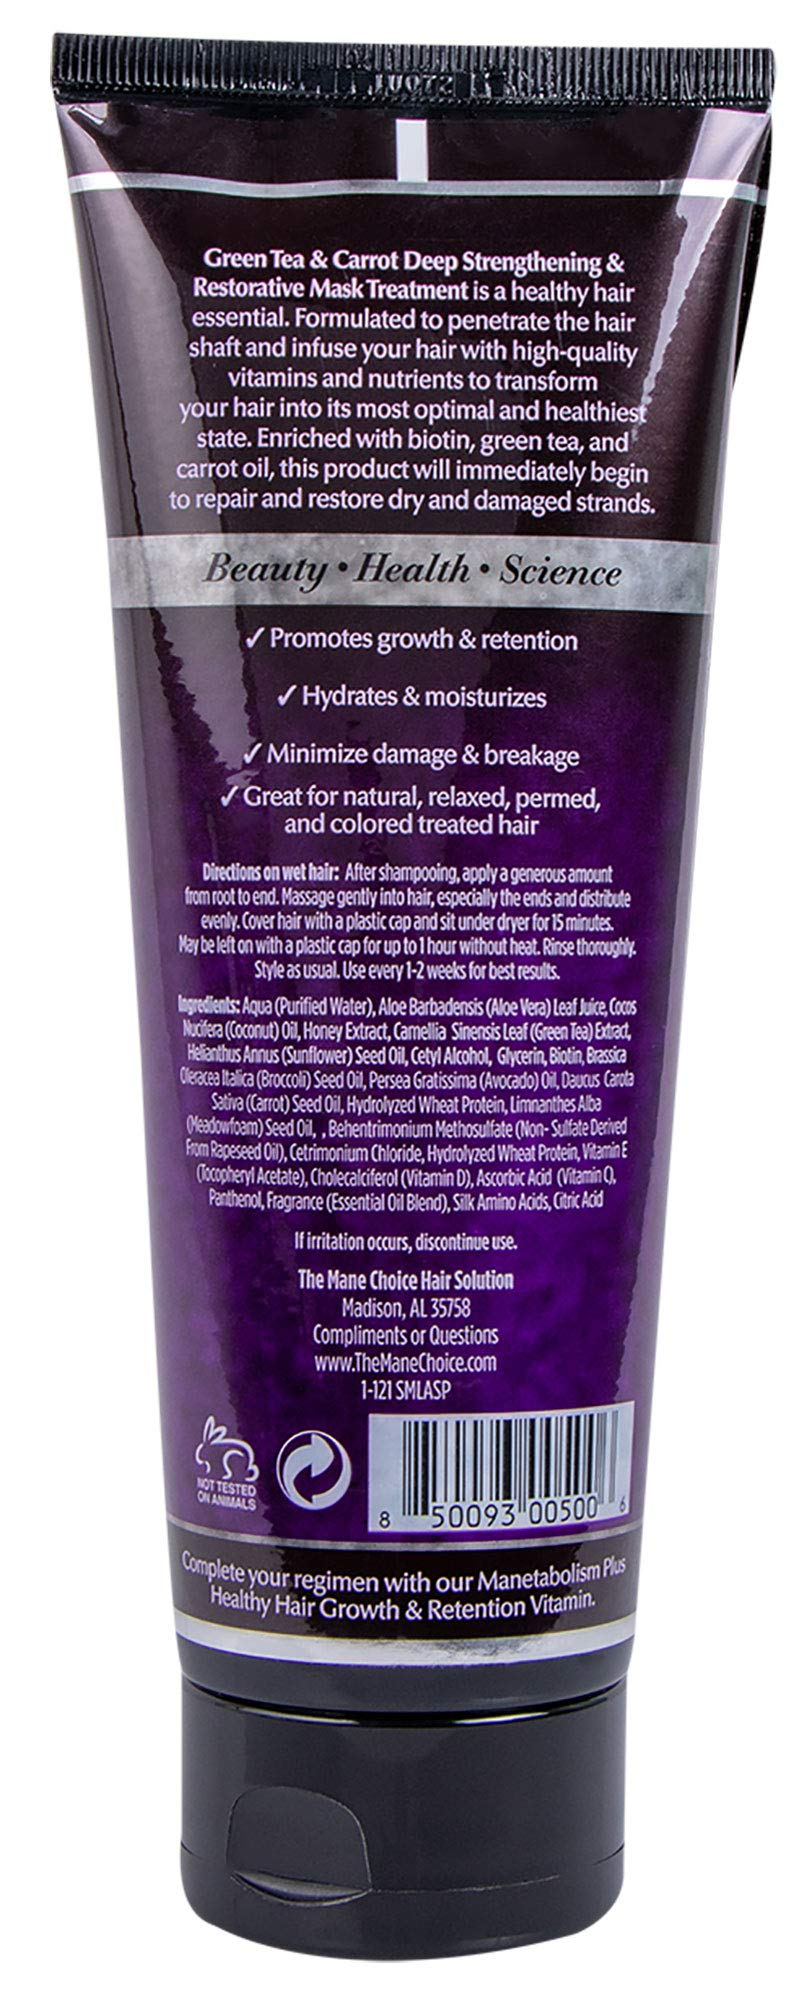 THE MANE CHOICE Green Tea & Carrot Deep Strengthening & Restorative Mask Treatment(8 Ounces / 230 Milliliters) - Hair Mask Infused With Vitamins, Nutrients & Biotin for Stronger Hair by The Mane Choice (Image #2)